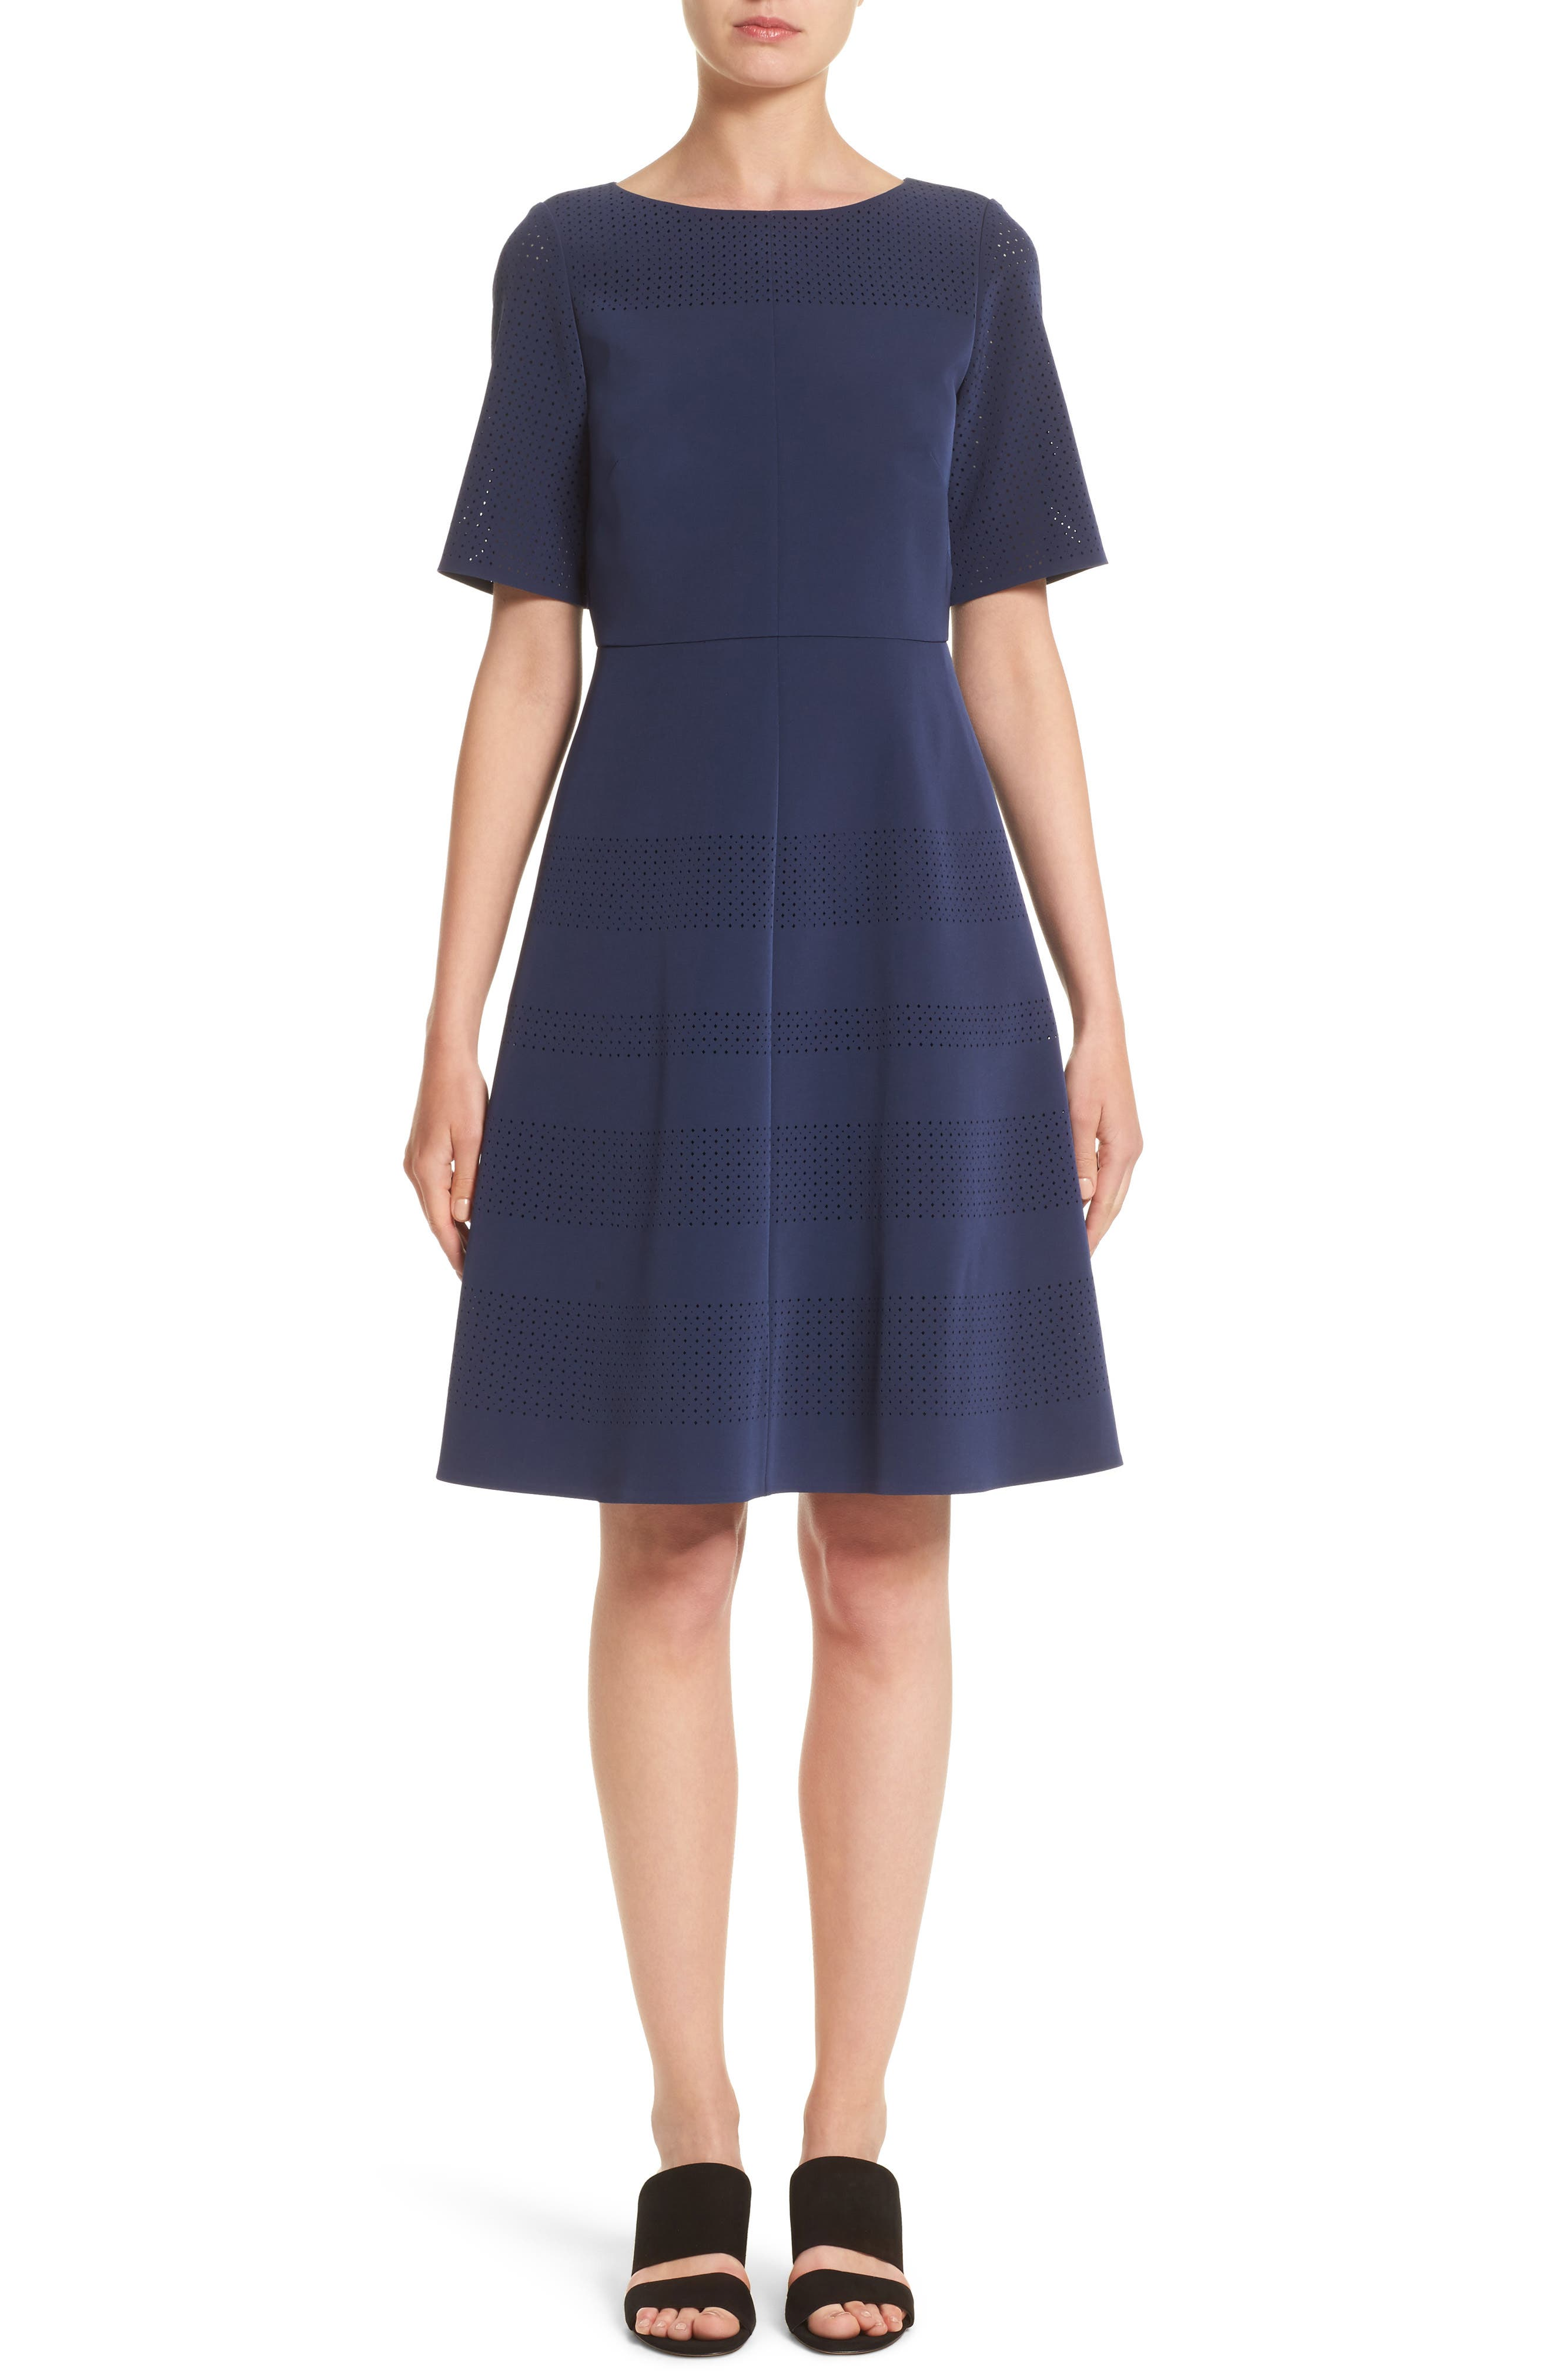 Alternate Image 1 Selected - Lafayette 148 New York Tamera Perforated Fit & Flare Dress